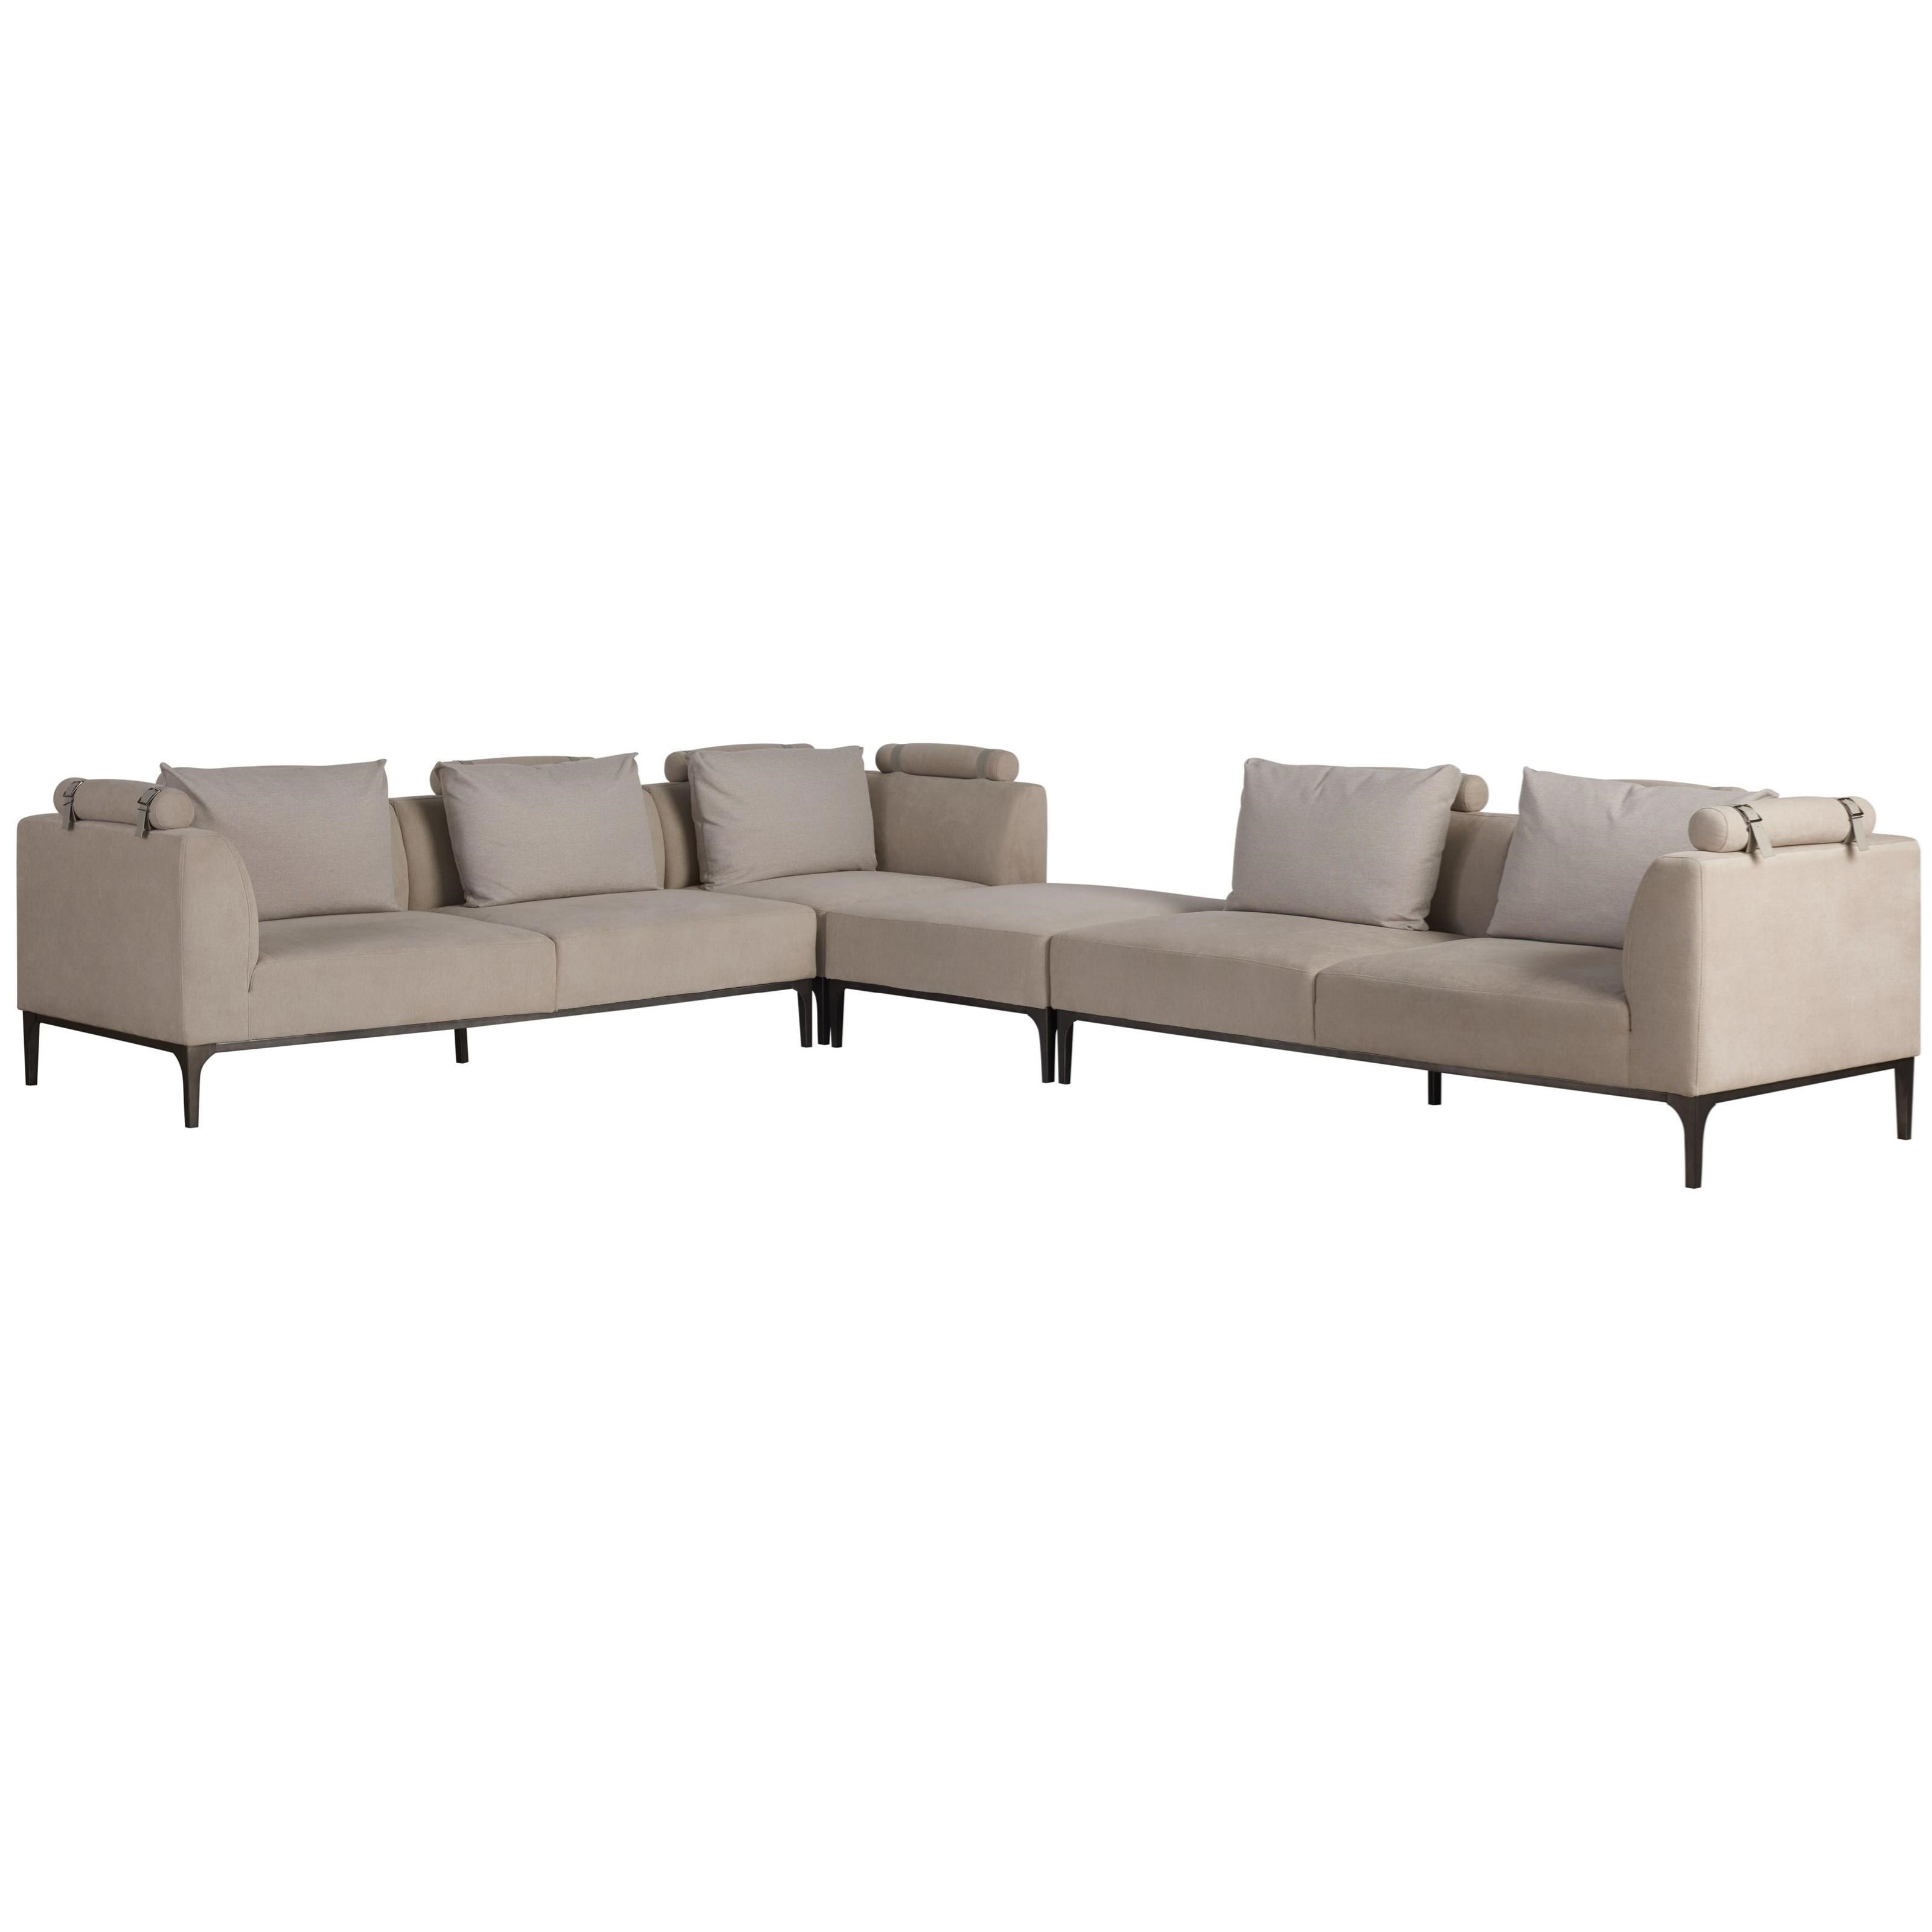 Nina Magon Jolie Sectional by Universal at Jacksonville Furniture Mart